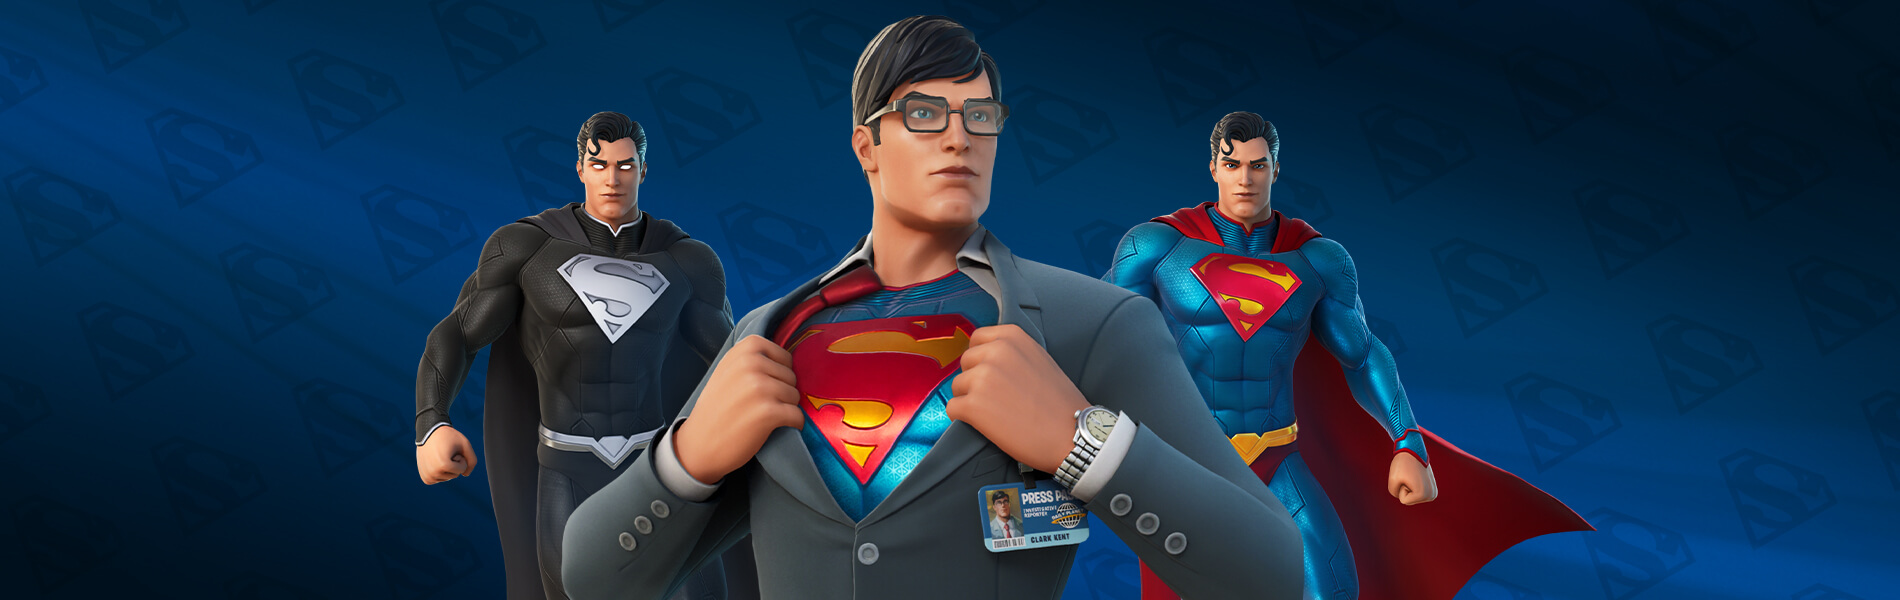 Fortnite Superman Battle Pass Outfit